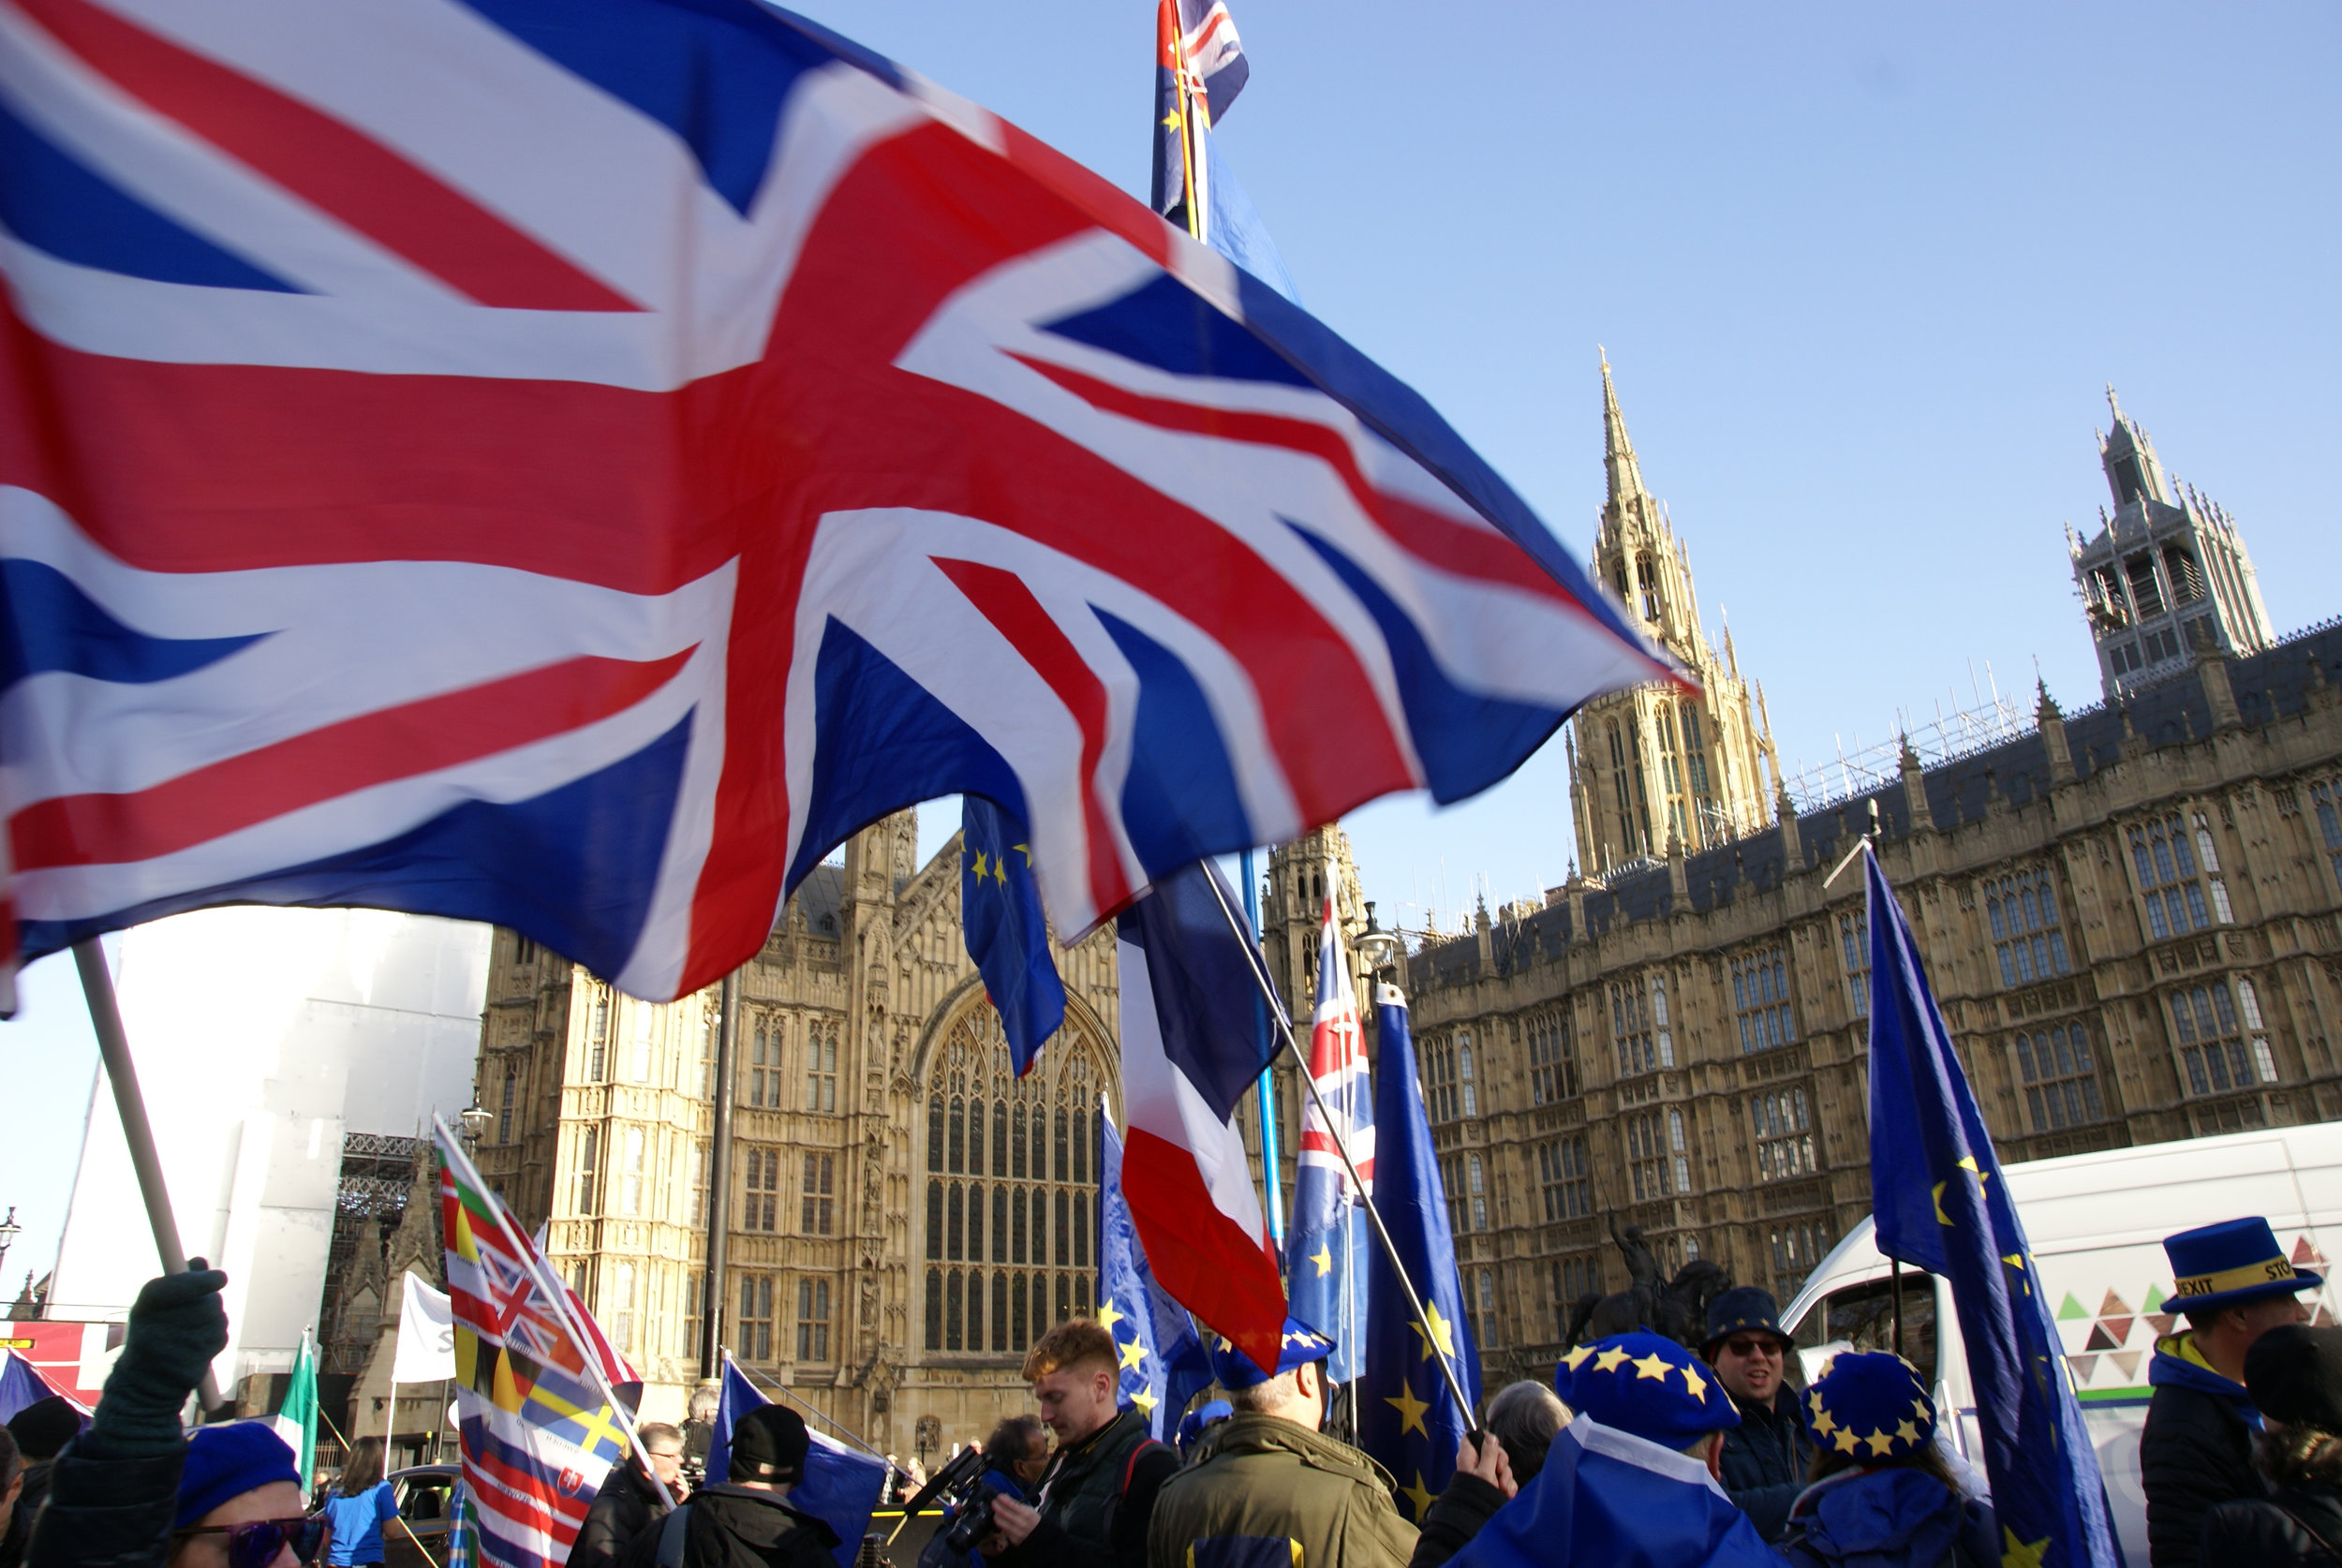 Protestors outside the Palace of Westminster [Wikimedia Commons].